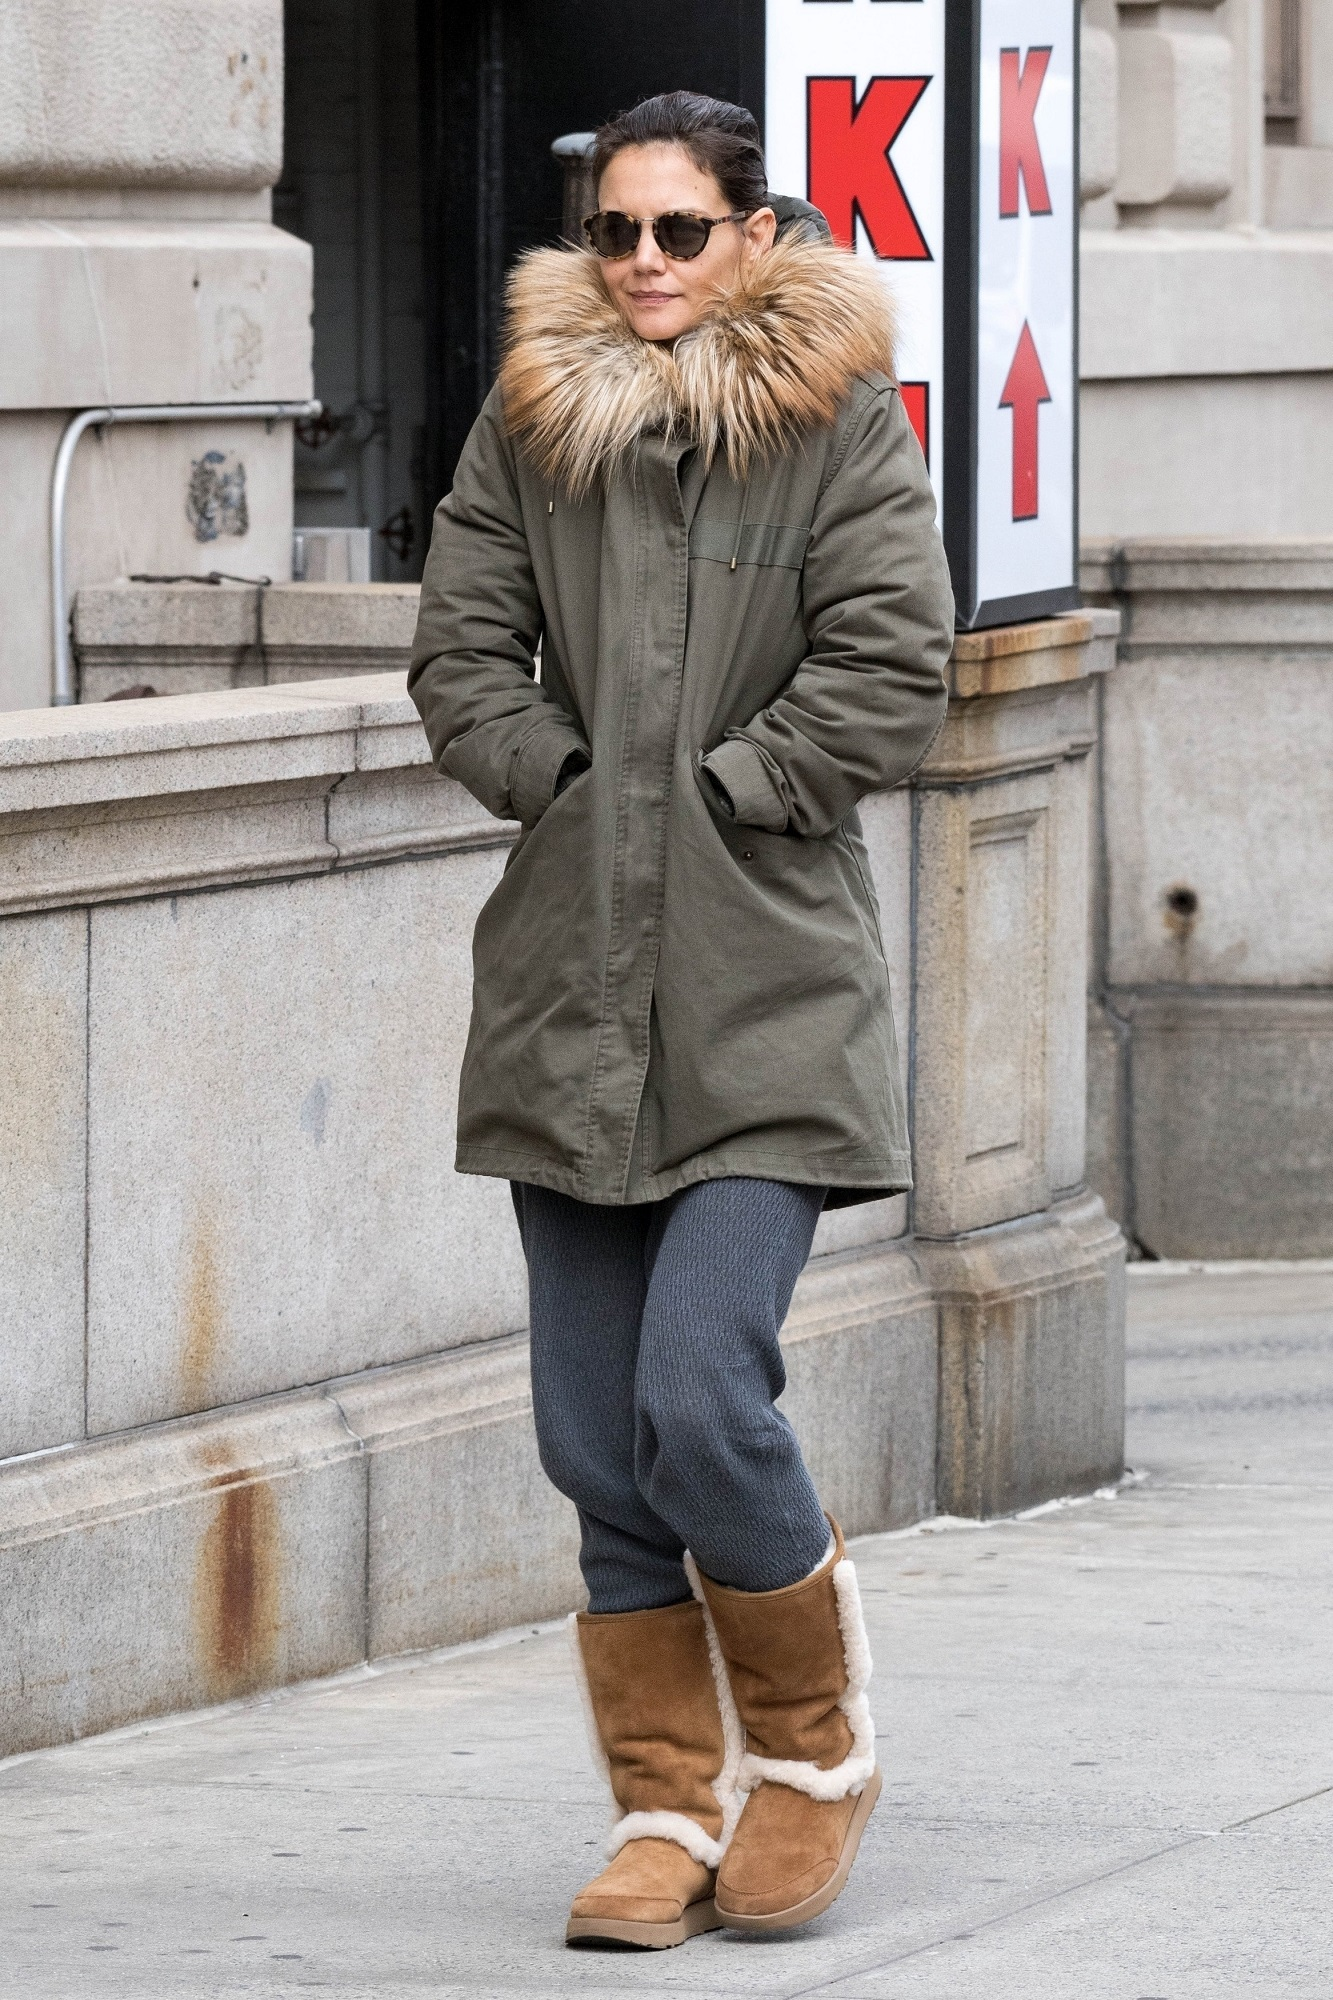 ** RIGHTS: WORLDWIDE EXCEPT IN BELGIUM, FRANCE, GERMANY, NETHERLANDS, POLAND ** New York, NY  - - Actress and busy mom Katie Holmes fights the chilly New York City air in her favorite UGG boots and a cozy parka with a fur trimmed hood while heading home in the Big Apple.  Pictured: Katie Holmes  BACKGRID USA 26 OCTOBER 2018,Image: 392792293, License: Rights-managed, Restrictions: , Model Release: no, Credit line: Skyler2018 / BACKGRID / Backgrid USA / Profimedia